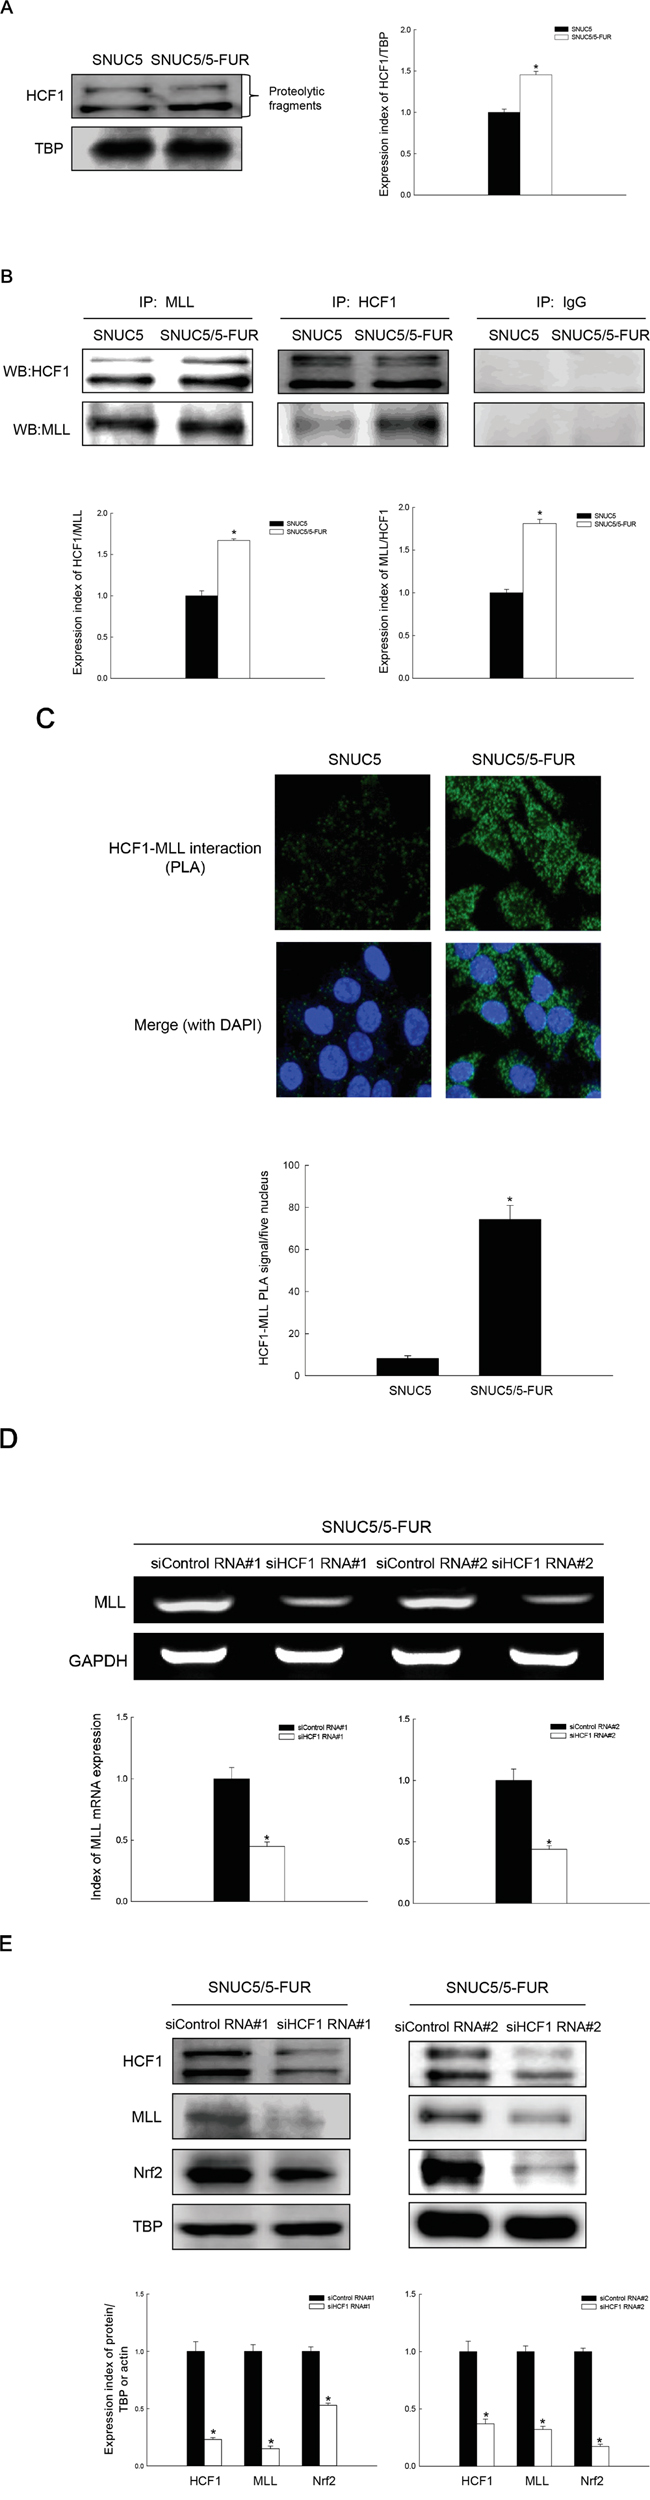 Effect of MLL-HCF1 interaction on histone methylation and Nrf2 expression in SNUC5/5-FUR cells.